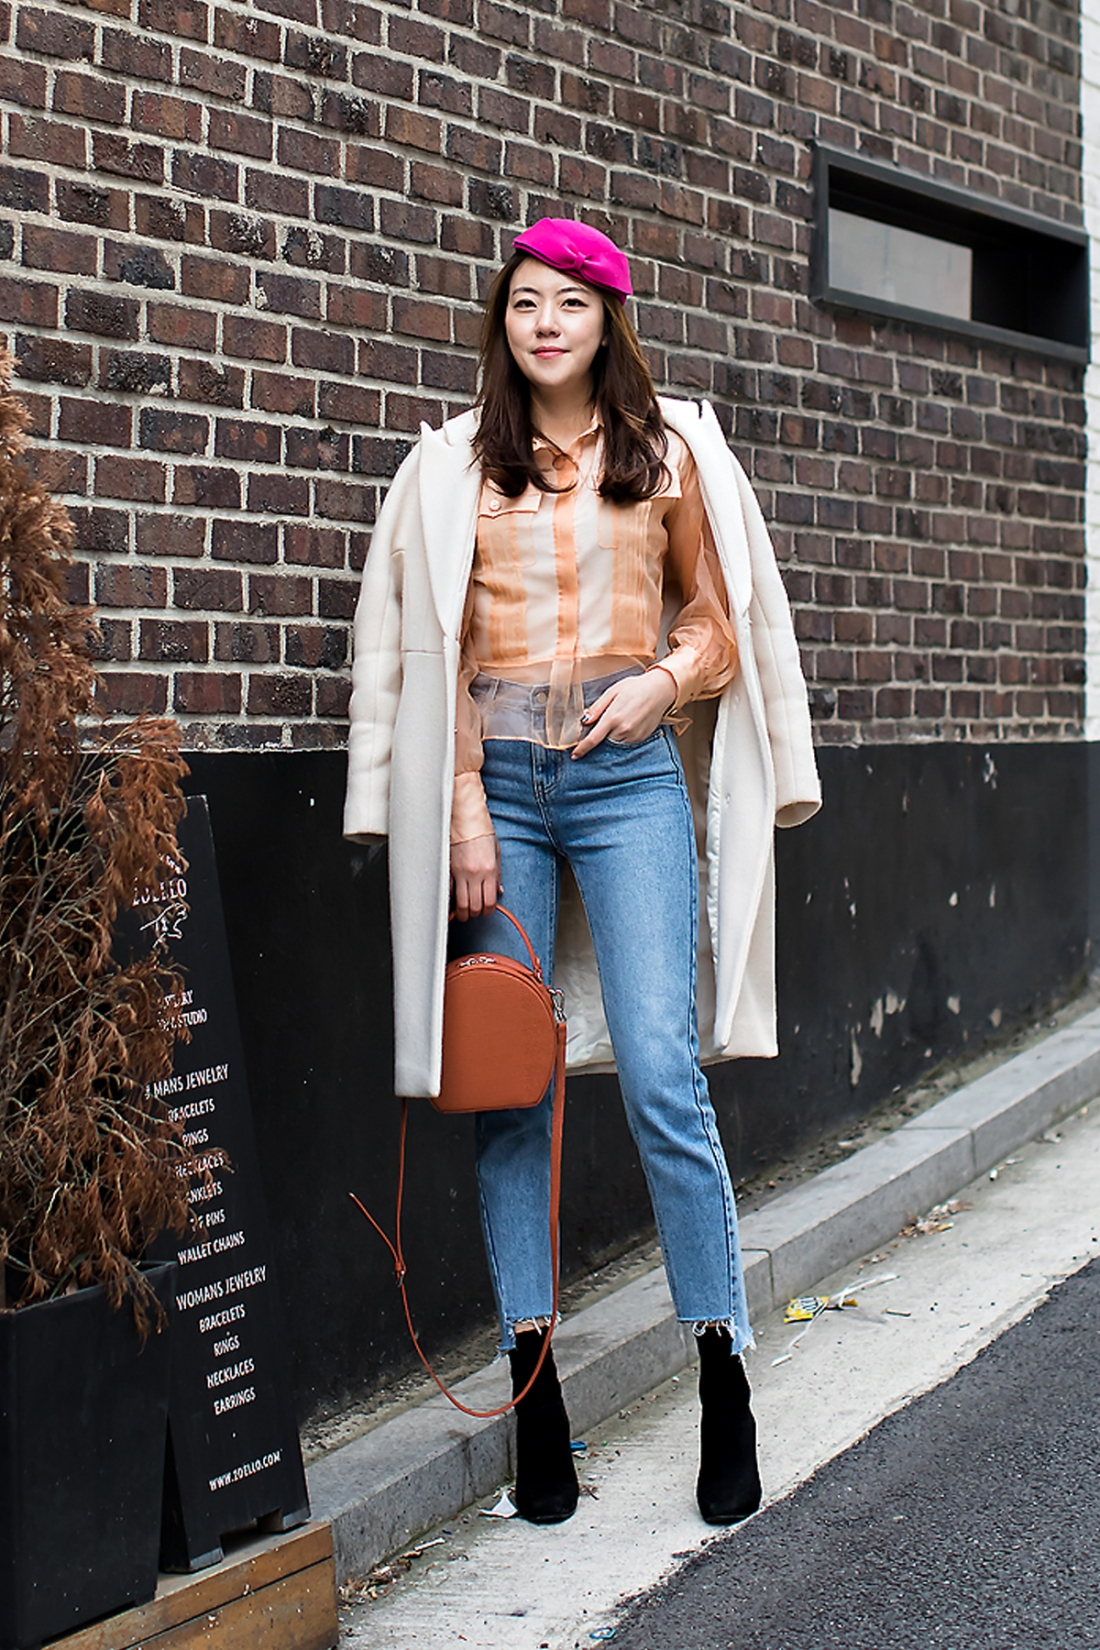 Cho Youngkyung, Street Fashion 2017 in SEOUL.jpg